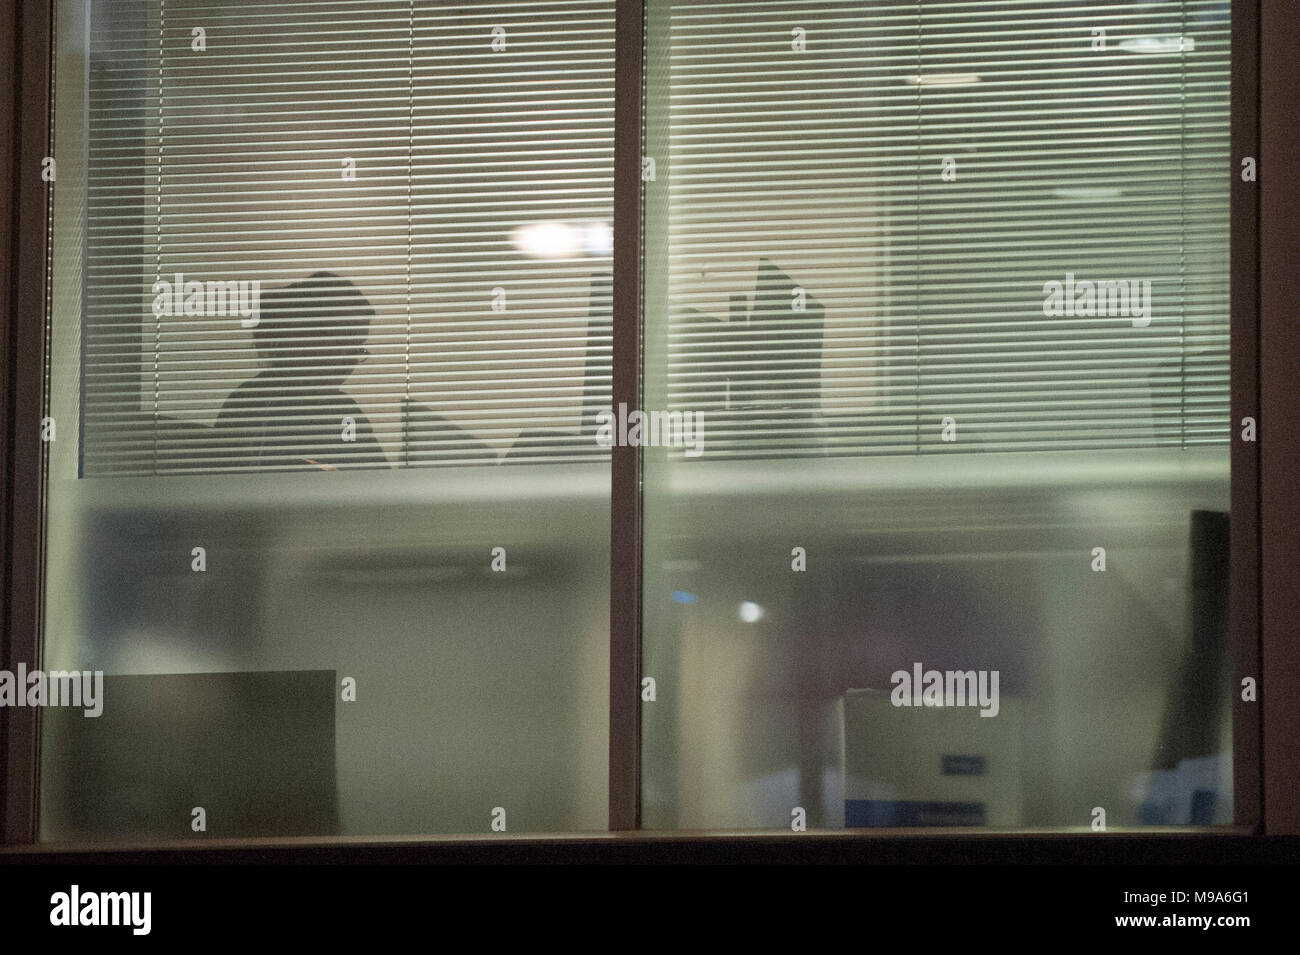 London, UK.  23 March 2018.  The UK Information Commissioner Office (ICO) search the offices of Cambridge Analytica in central London.  A court warrant to search the premises for evidence of any breaches of the Data Protection Act has just been obtained.  Cambridge Analytica, a UK based data consulting firm, has been accused of using the personal data of 50m Facebook users to influence the 2016 US presidential election.  .  Credit: Stephen Chung / Alamy Live News - Stock Image